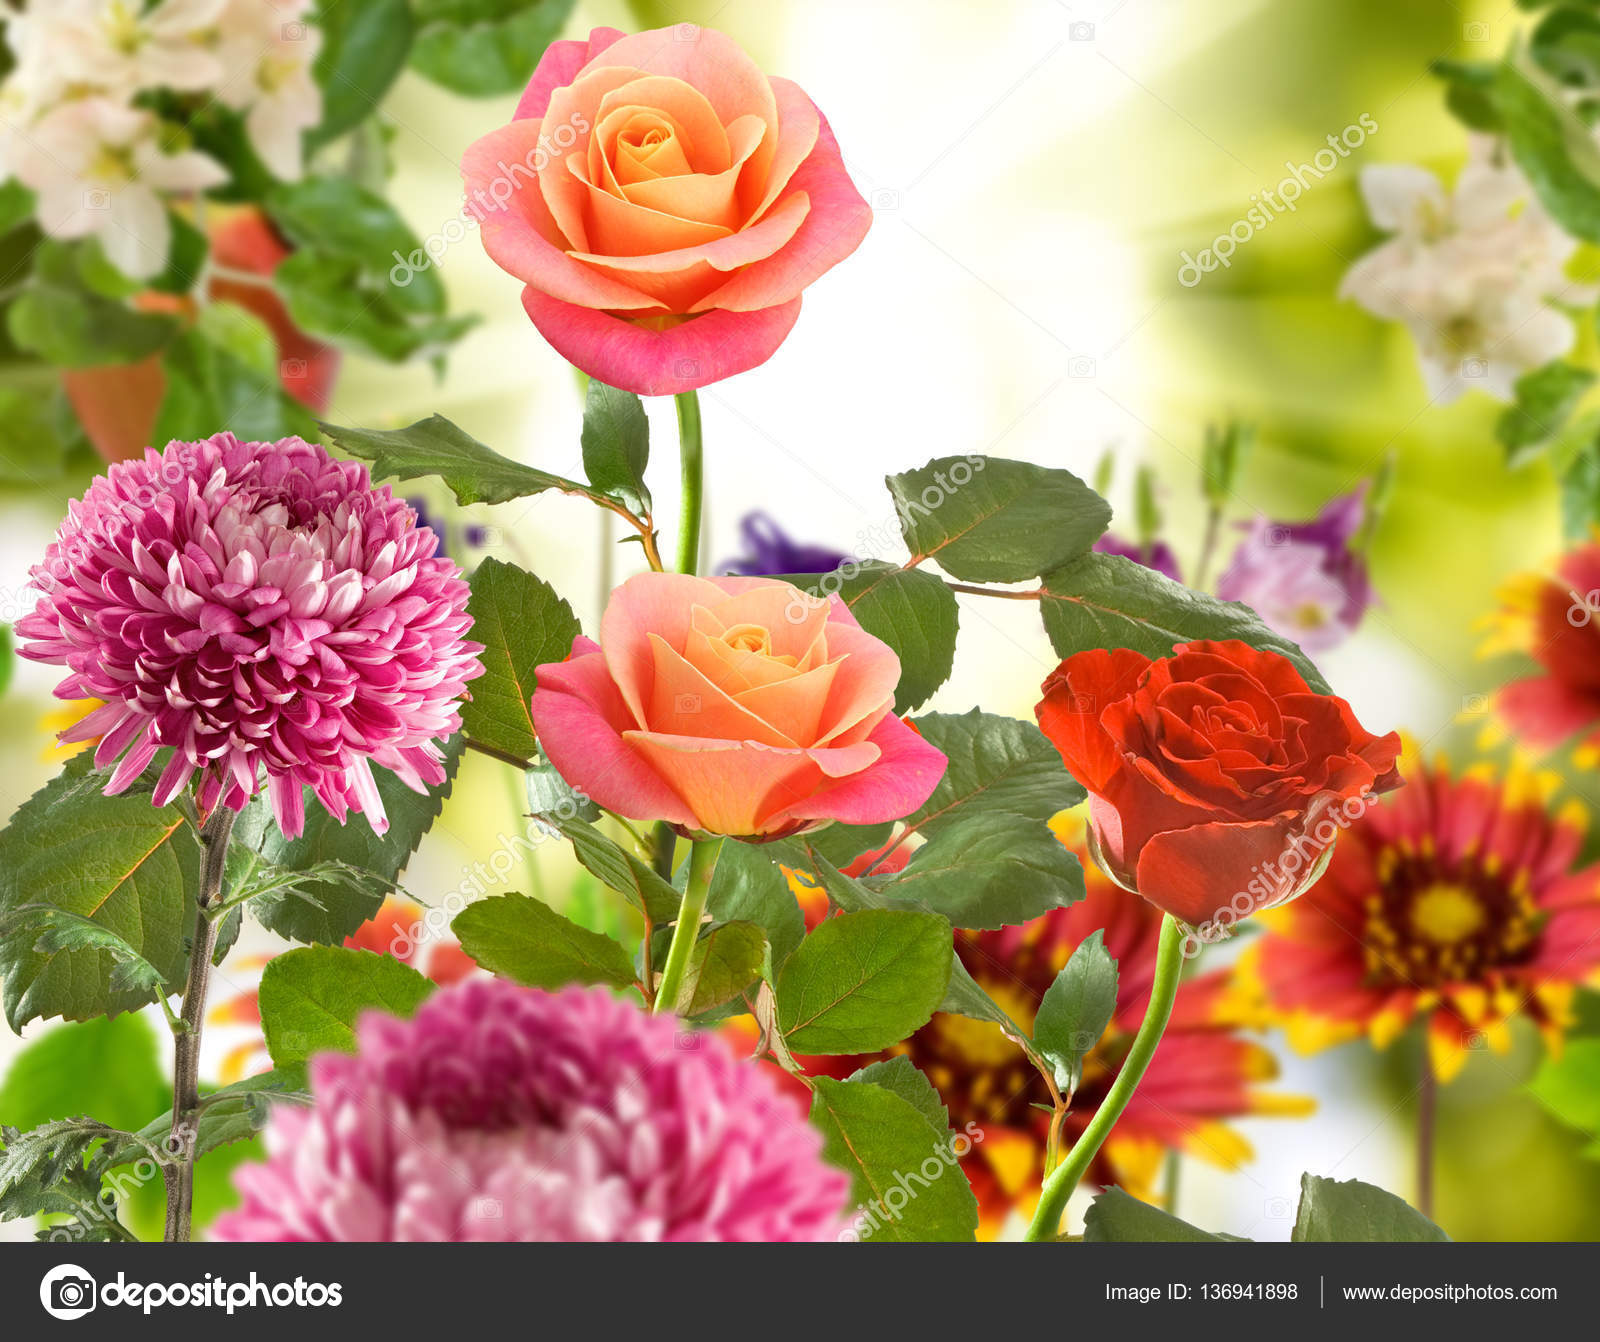 Bouquet of different flowers on a blurred background stock photo beautiful bouquet of different flowers on a blurred background photo by cooperr007 izmirmasajfo